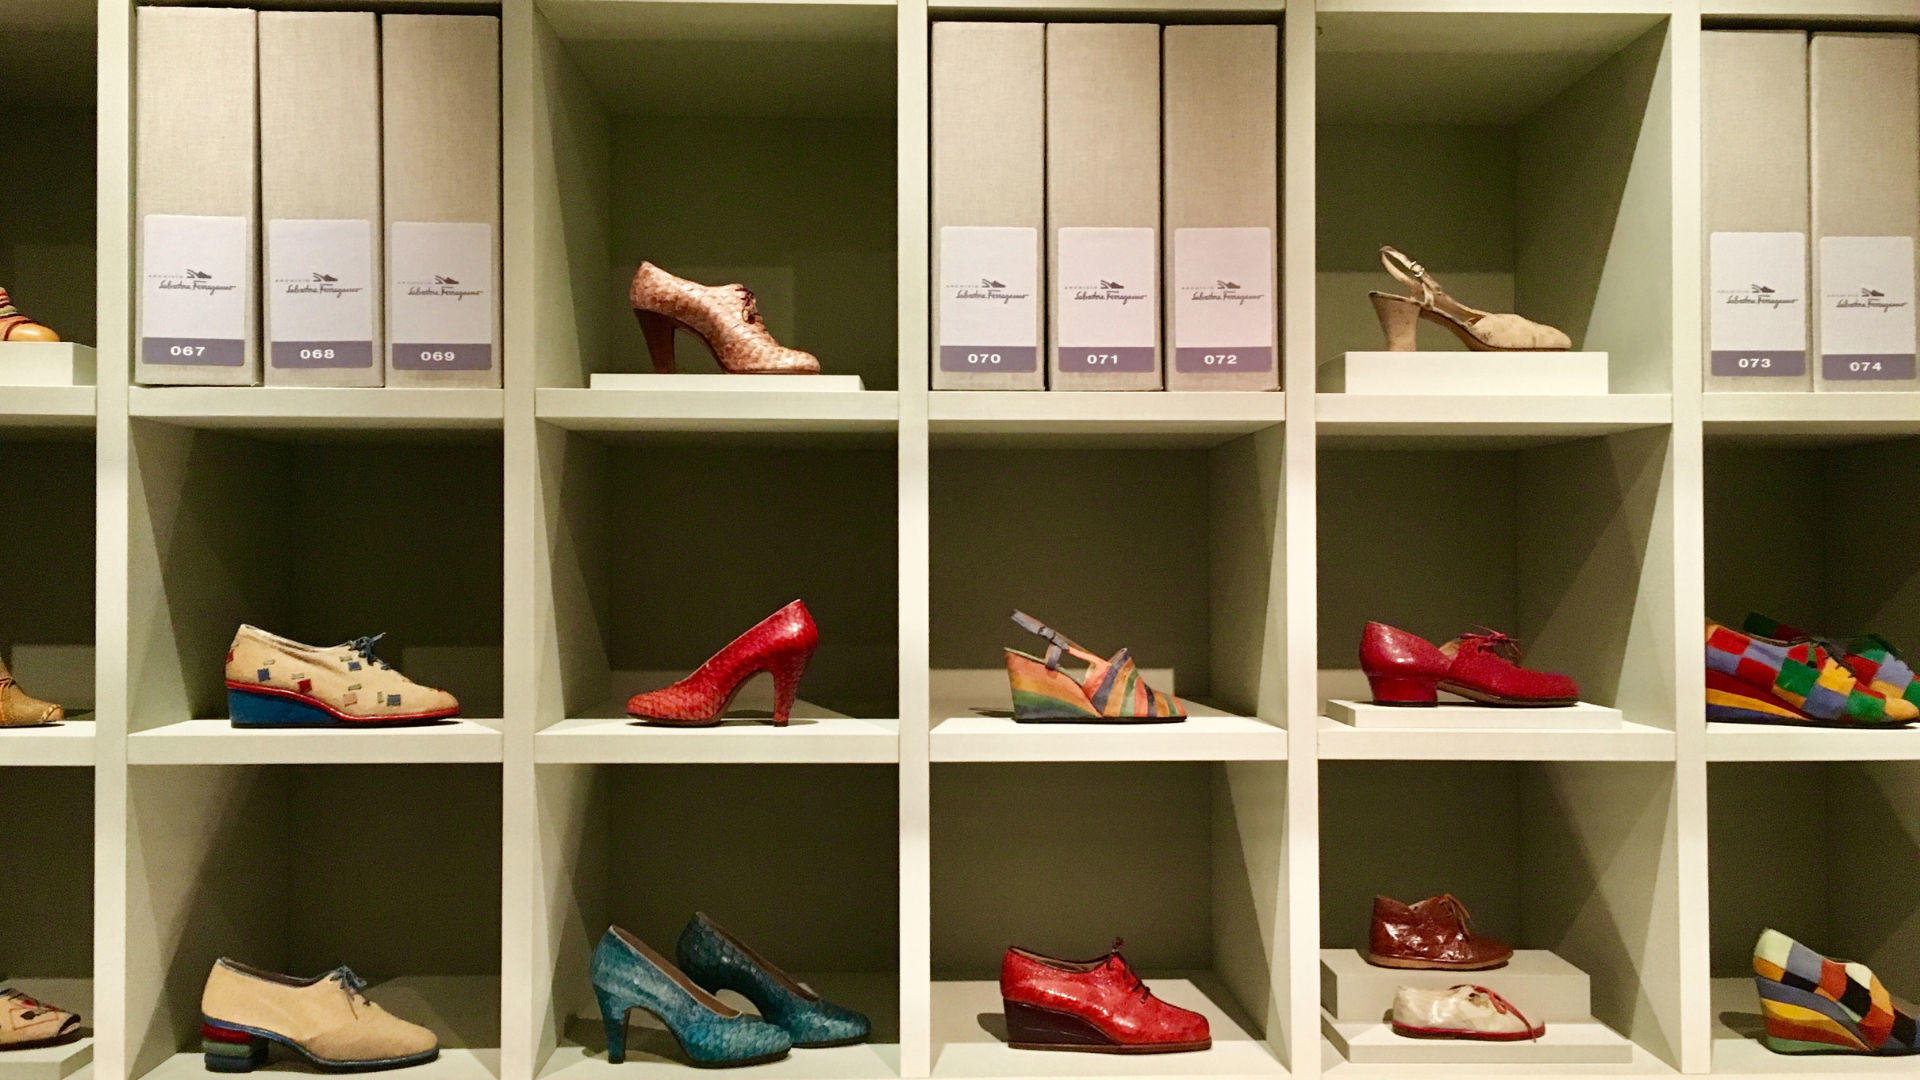 The Salvatore Ferragamo Museum In Italy Launches 'Sustainable Thinking' Exhibition